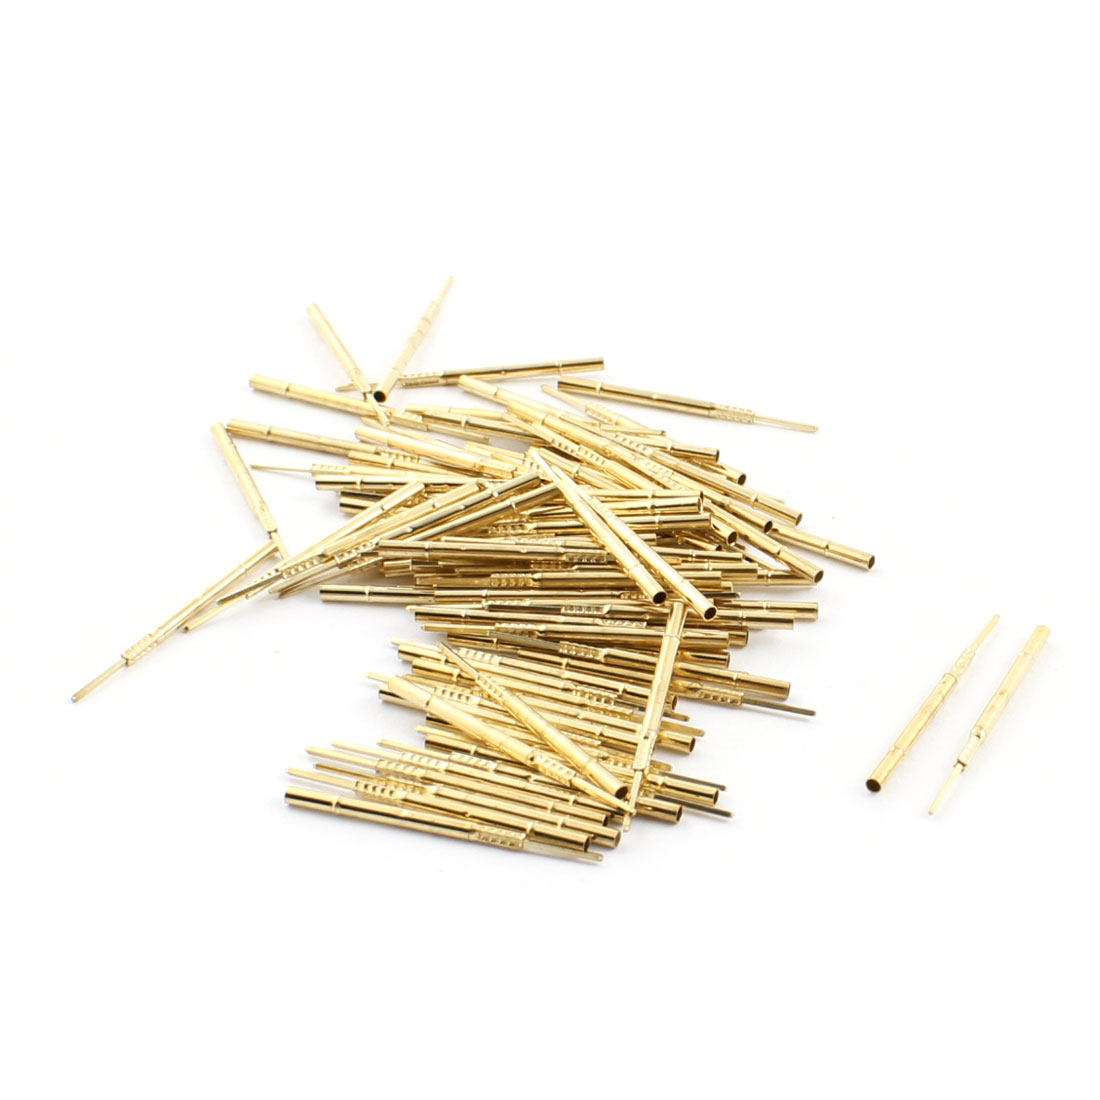 100pcs P160-3W 0.6mmx0.6mm Tip 30mm Length Metal Test Probes Testing Pins Receptacle Gold Tone for PCB Board